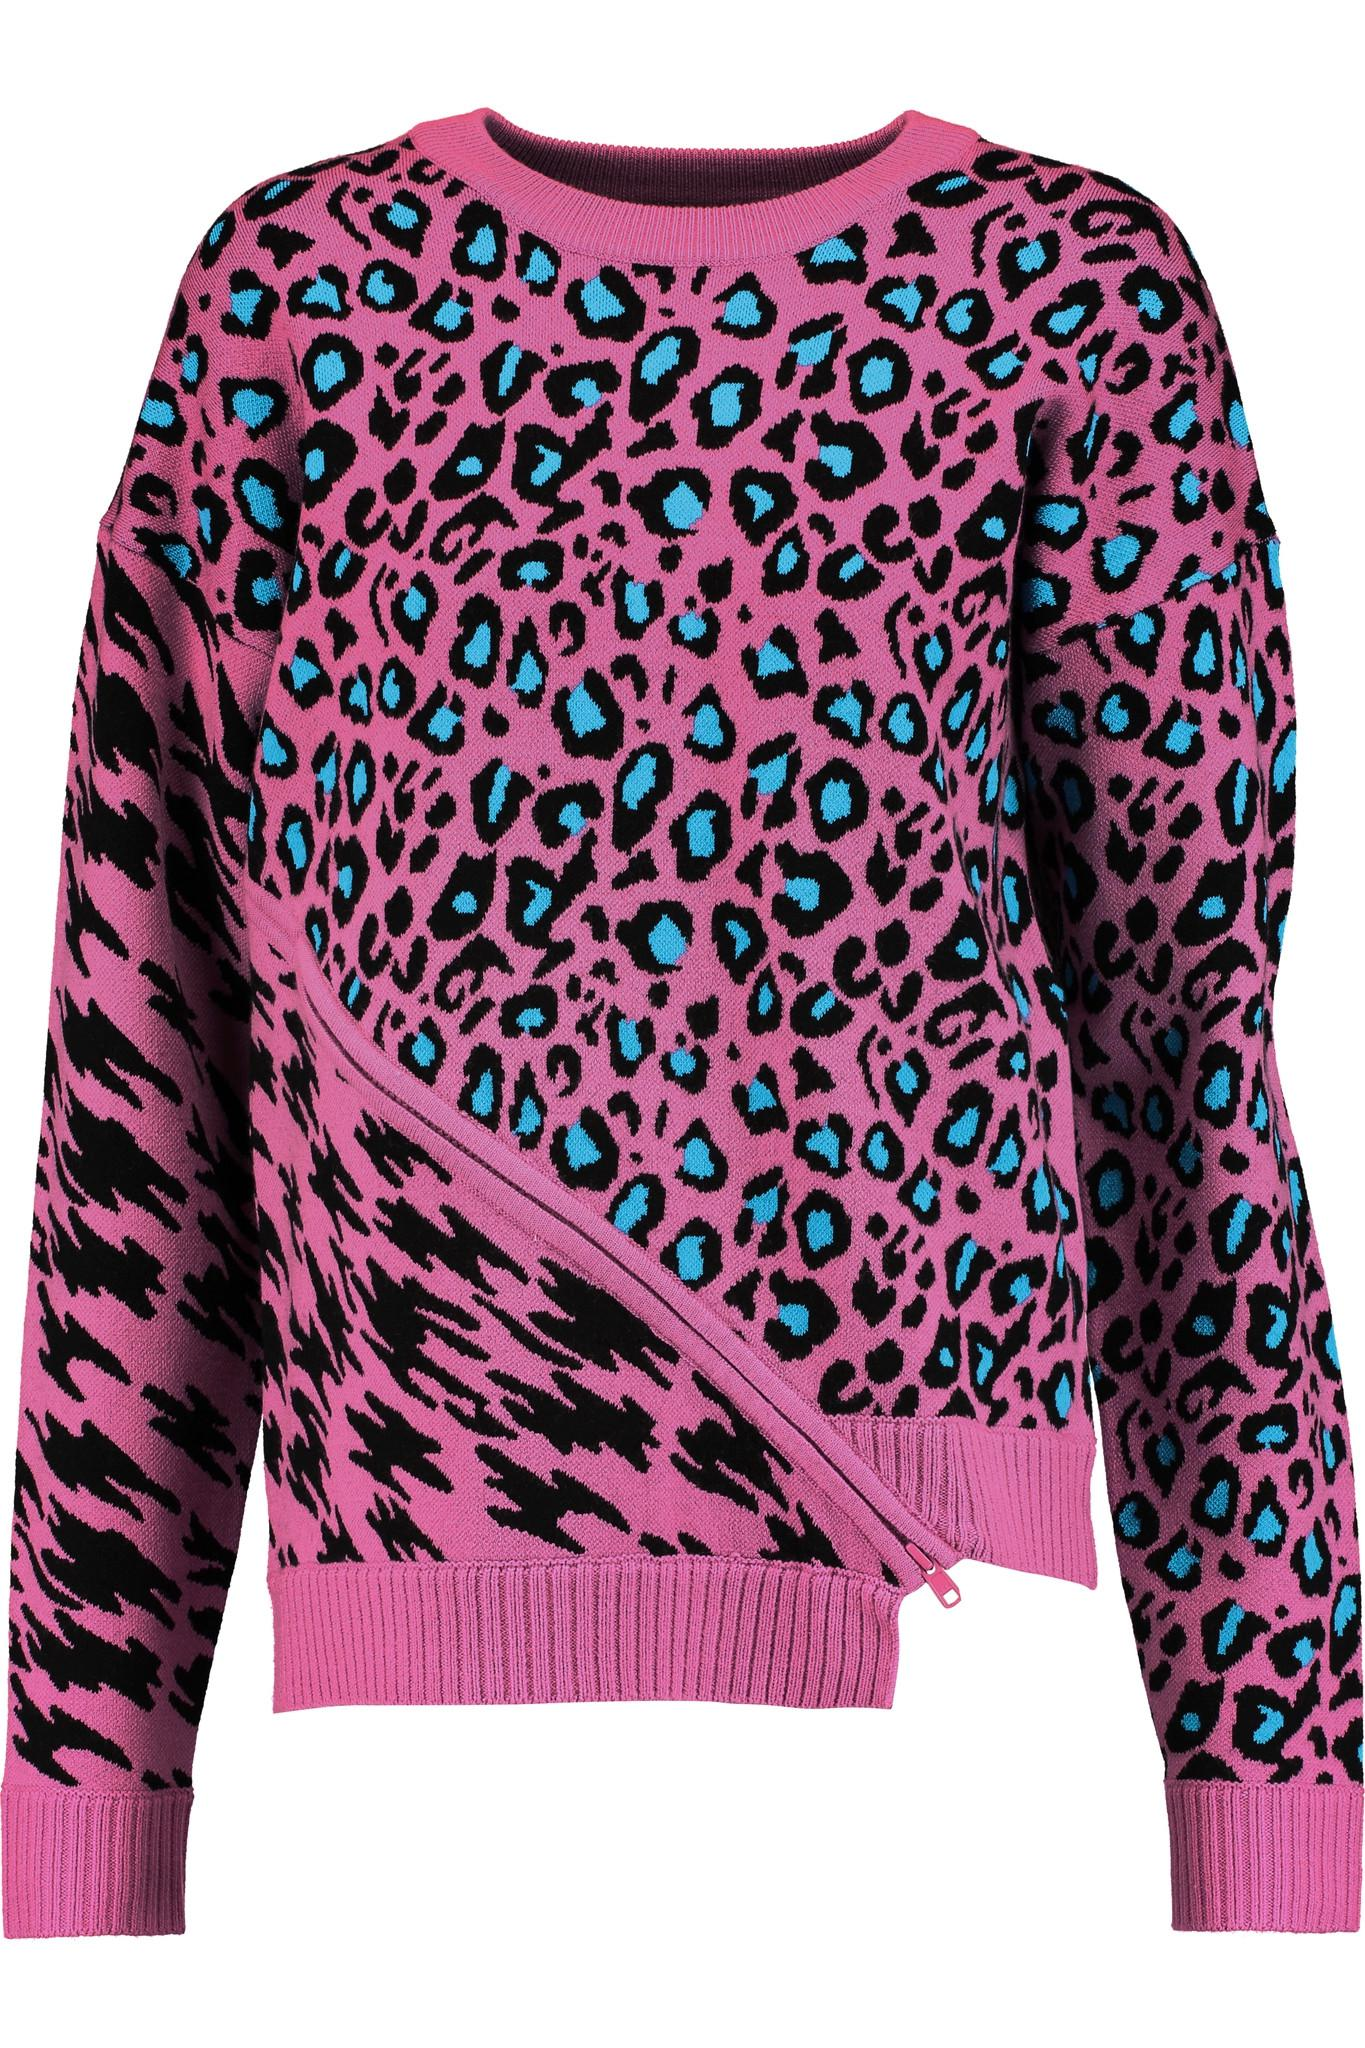 Opening ceremony Leopard-intarsia Stretch-knit Sweater in Pink | Lyst